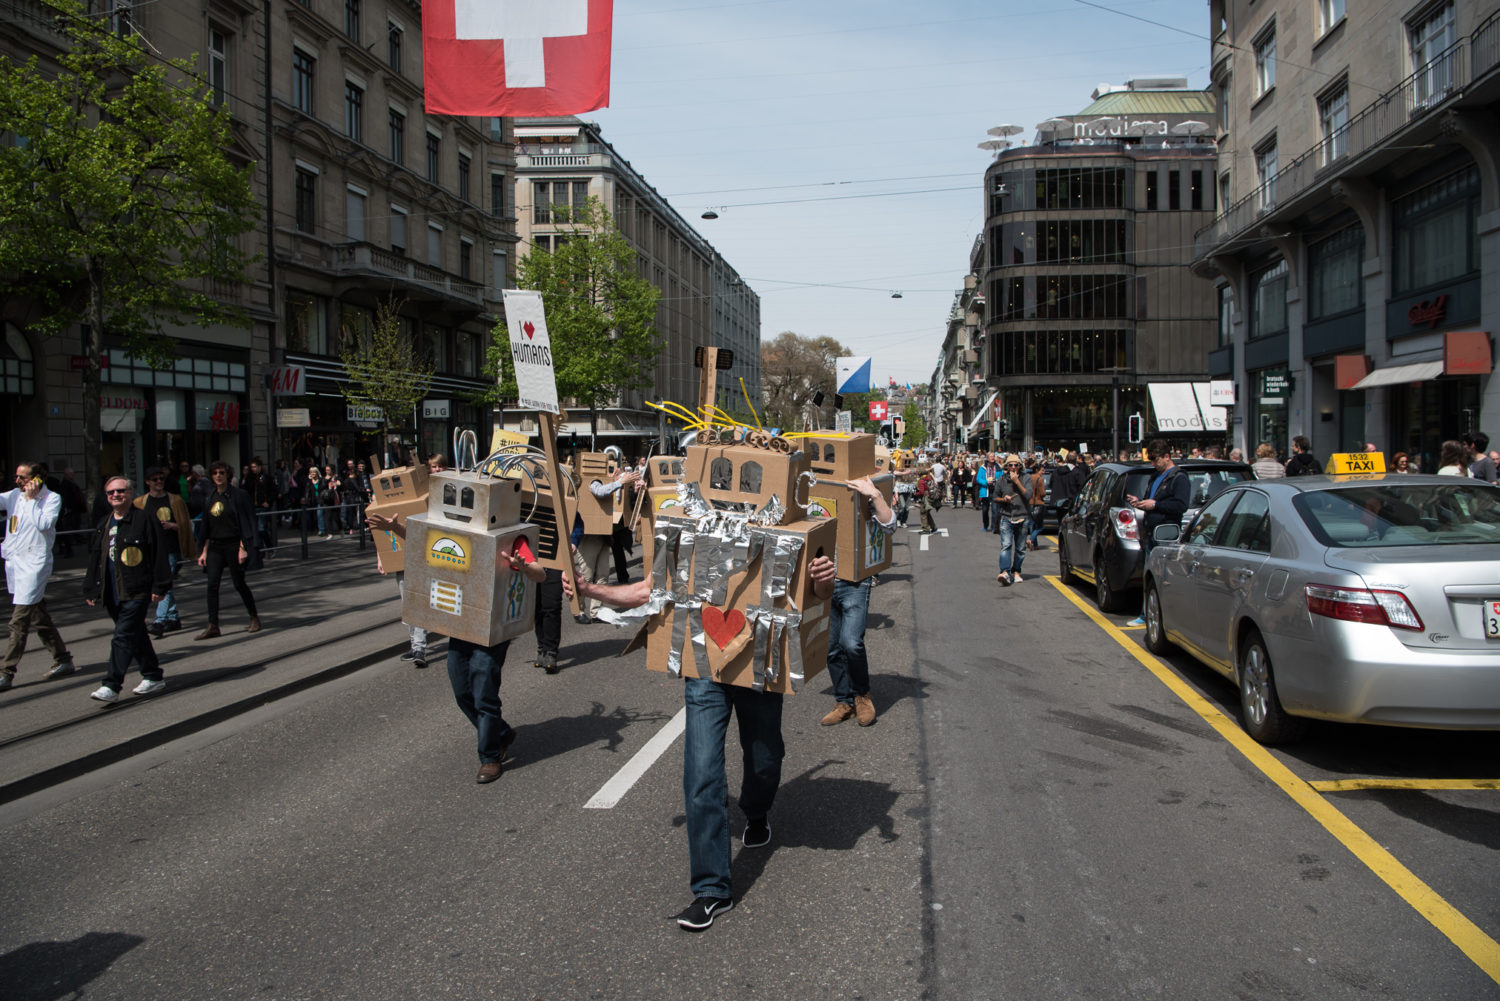 Bahnhofstrasse, Bürkliplatz, Europa, Grundeinkommen, Kanton Zürich, Kreis 1, Nordostschweiz, Paradeplatz, Photo-Bot, Schweiz, Zürich, _THEMES, anlässe, demo, demonstration, district 1, events, initiative, object, objekt, political event, politics, politik, politik anlass, roboter, robots, swiss initiative